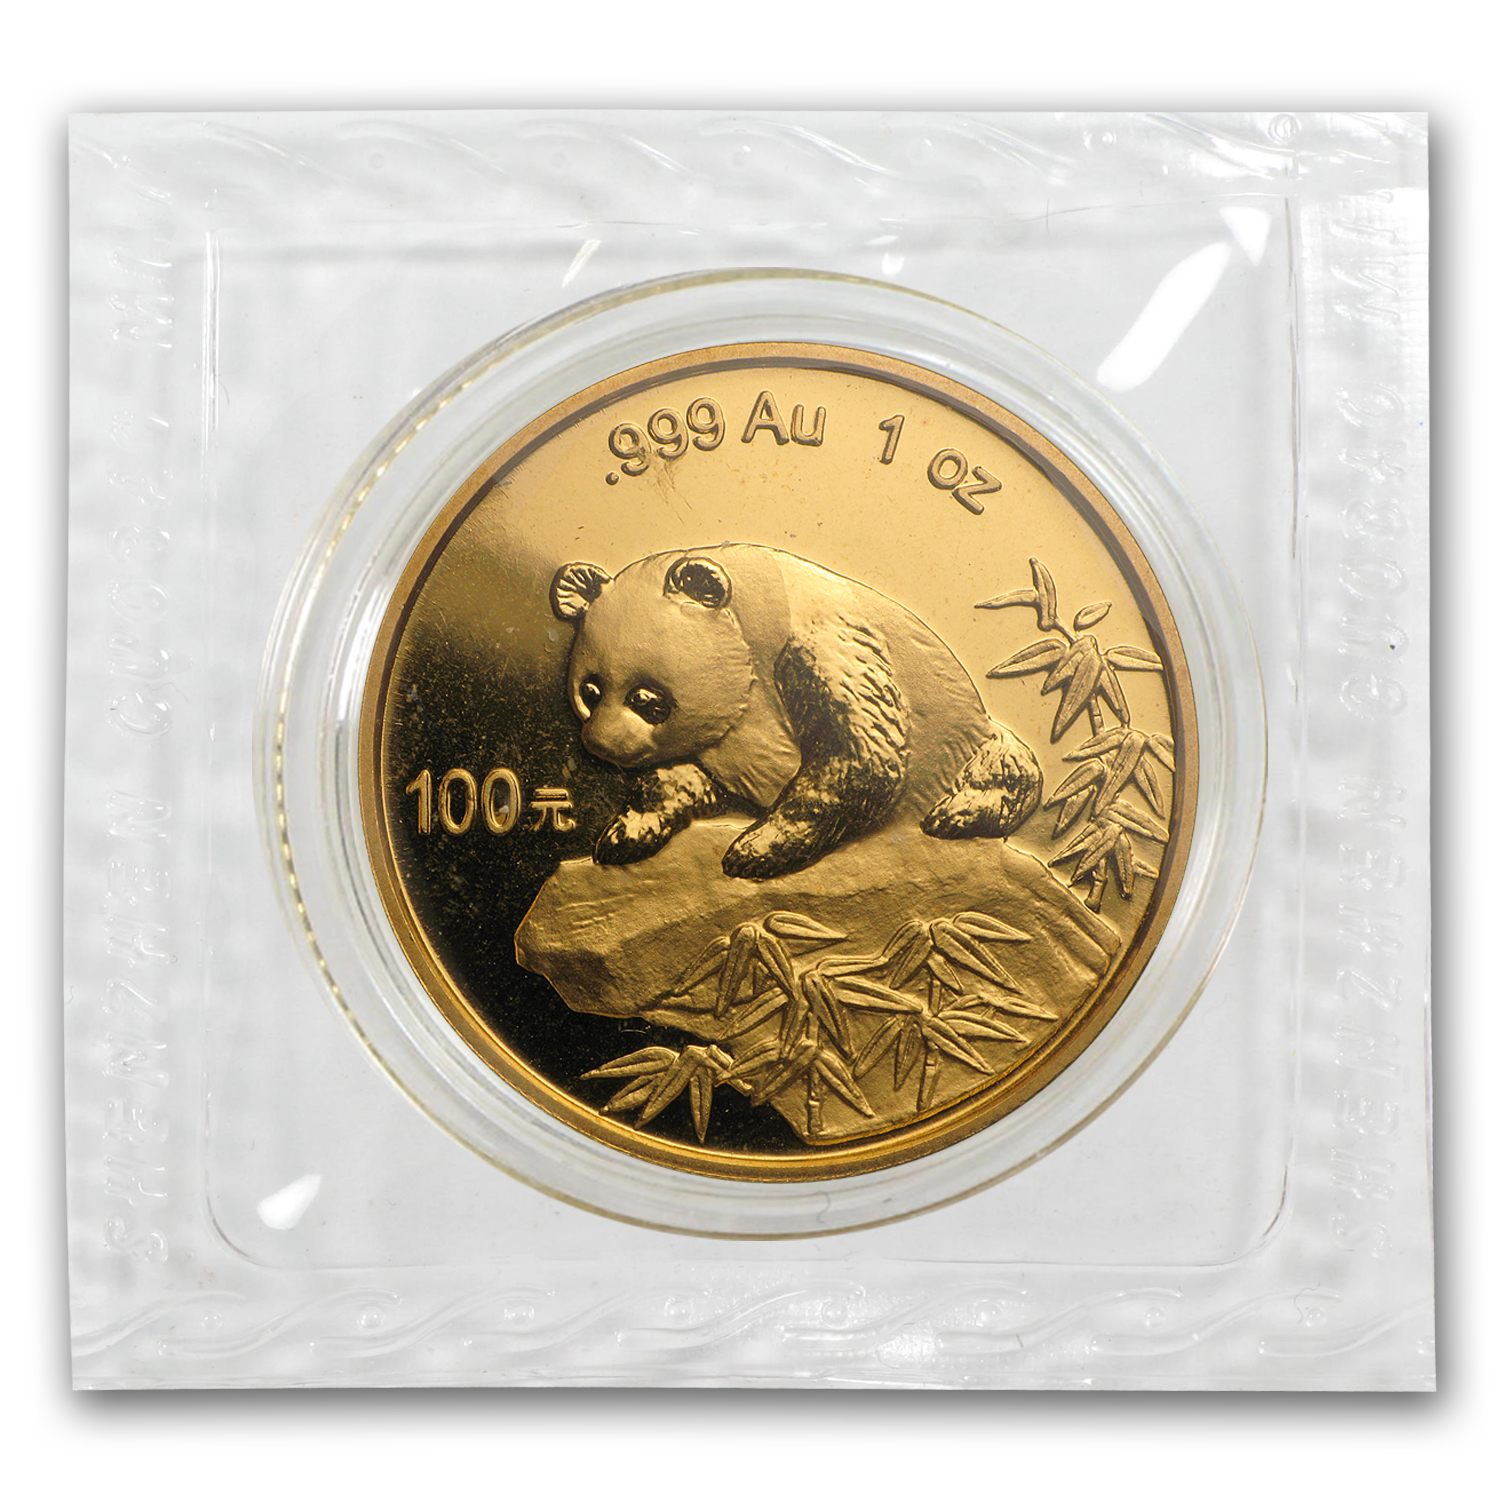 1999 China 1 oz Gold Panda Large Date w/Serif BU (Sealed)